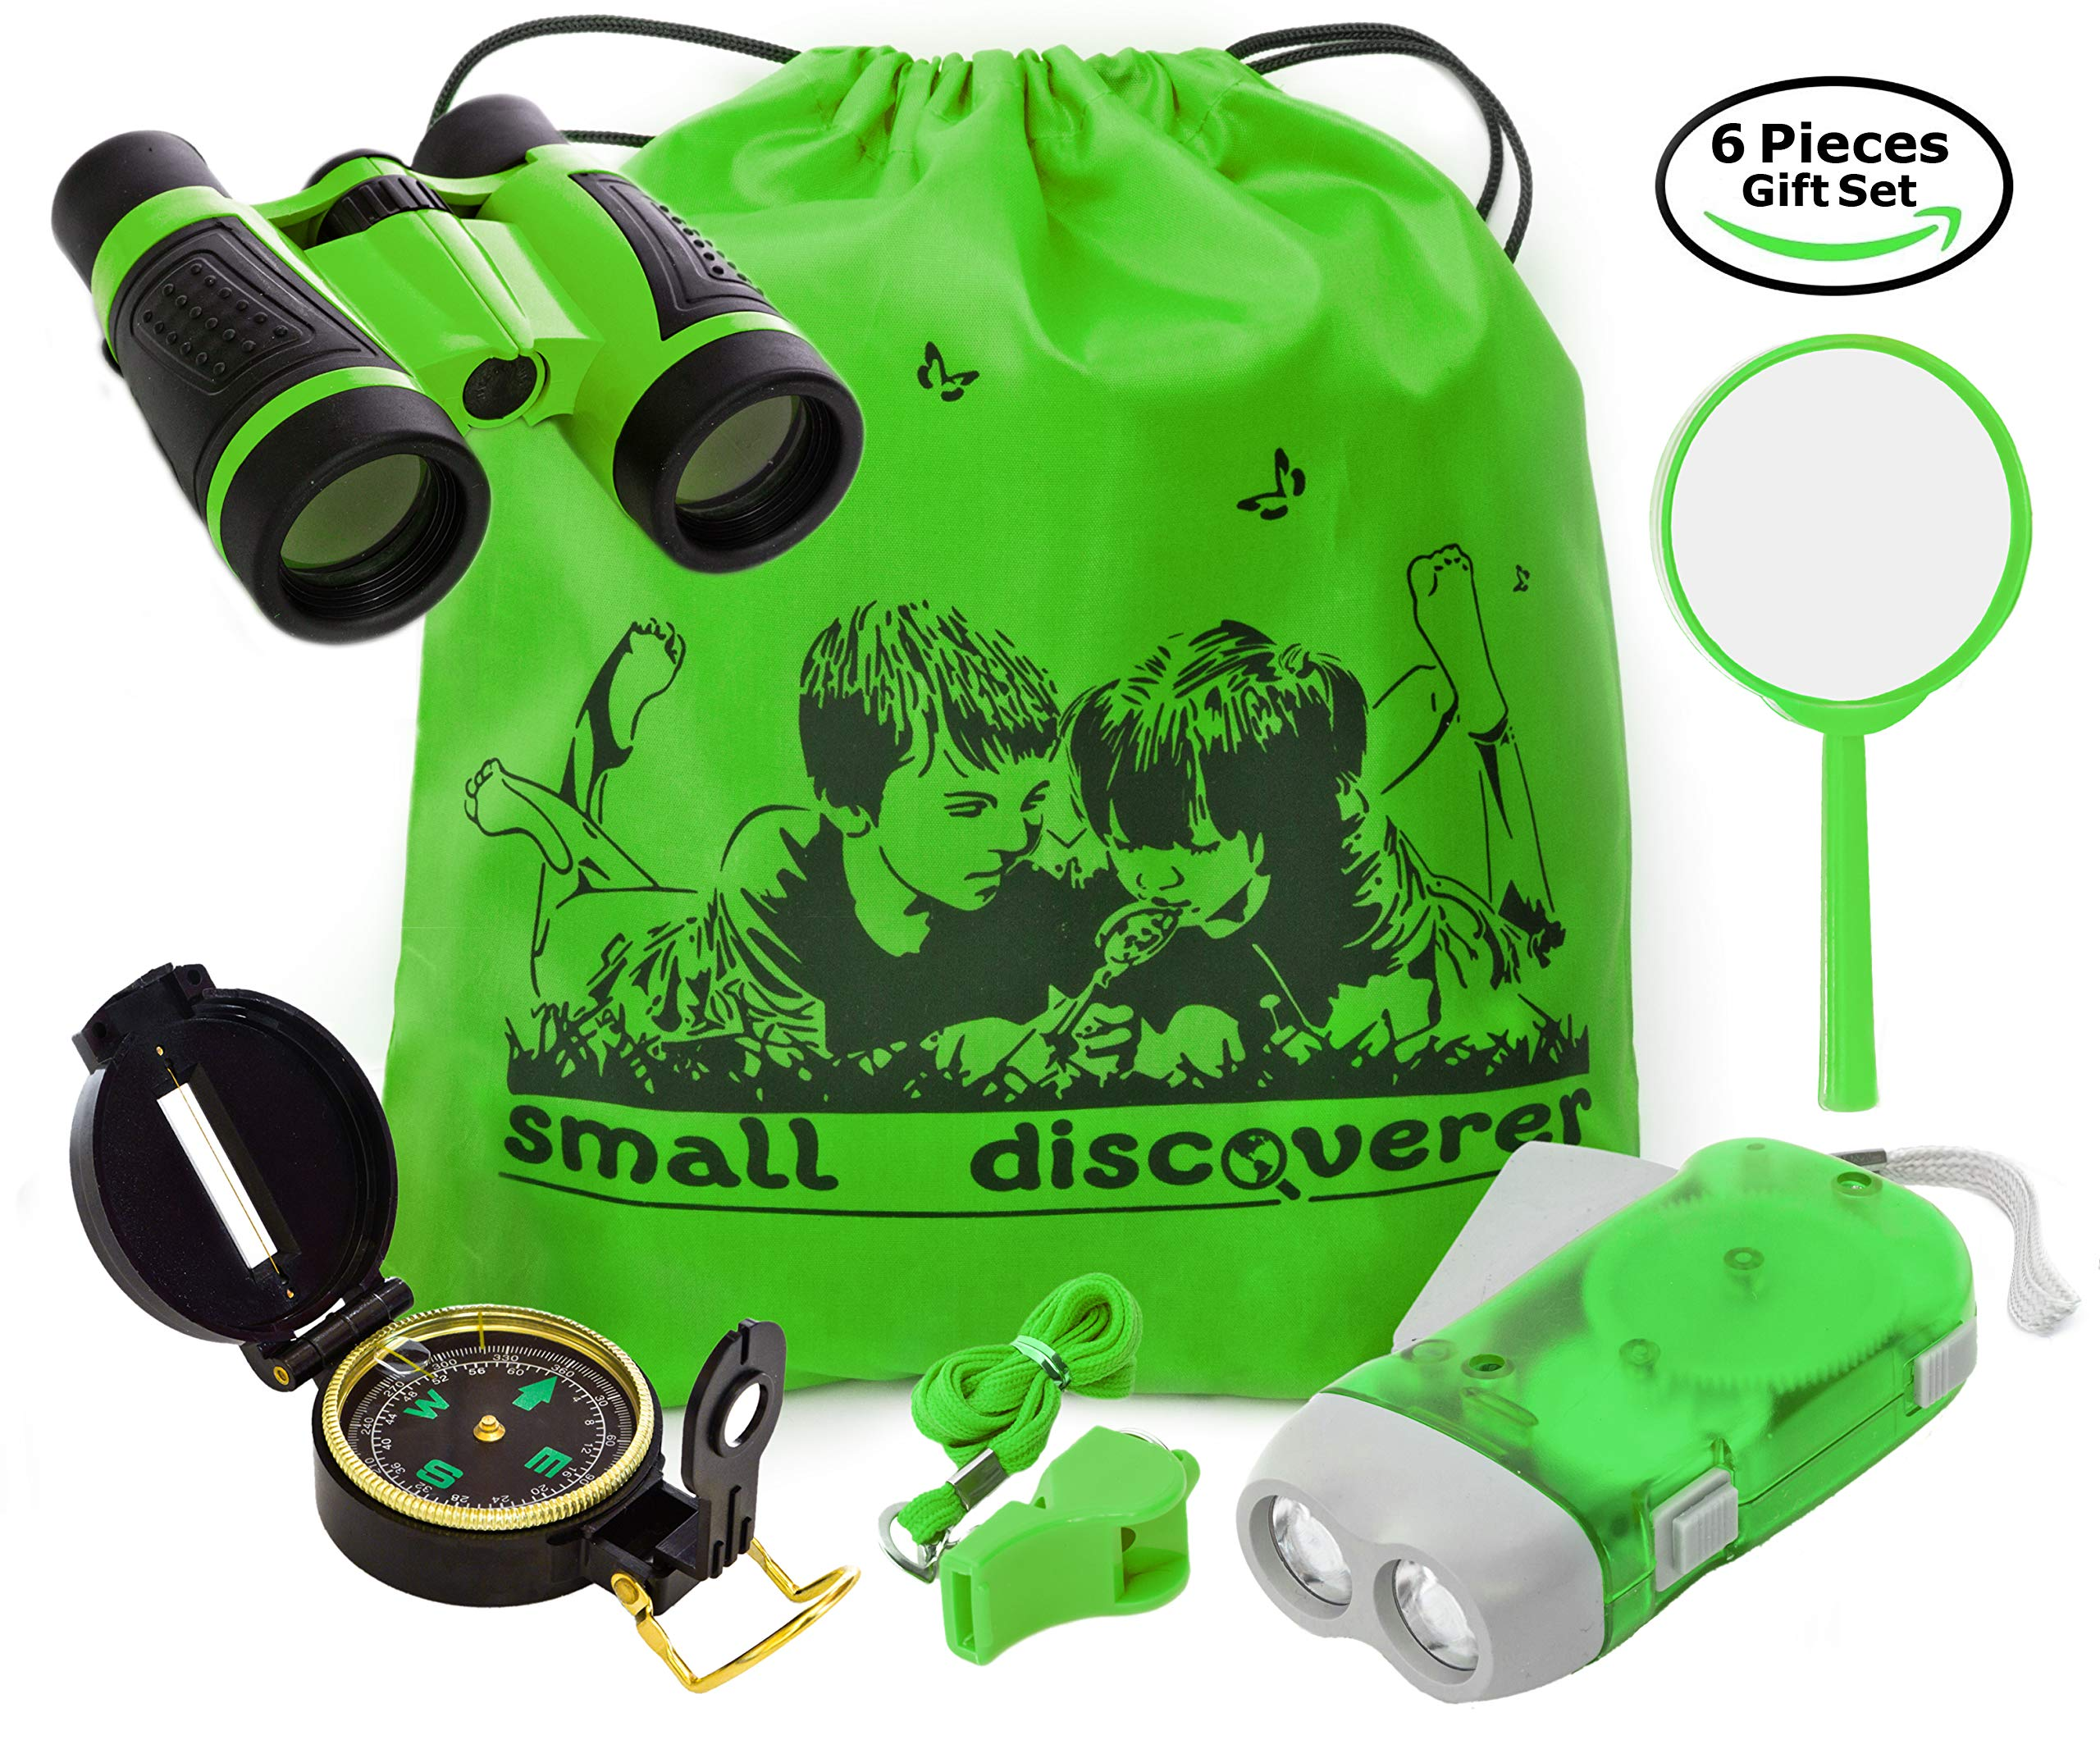 Kid Explorer Kit Binocular Flashlight Compass Magnifying Glass Whistle Backpack Play Kid Camping Gear Educational Toys Adventure Hiking Bird Watching Gift for 3-12 Year Old Boys and Girls (Green) by Small Discoverer